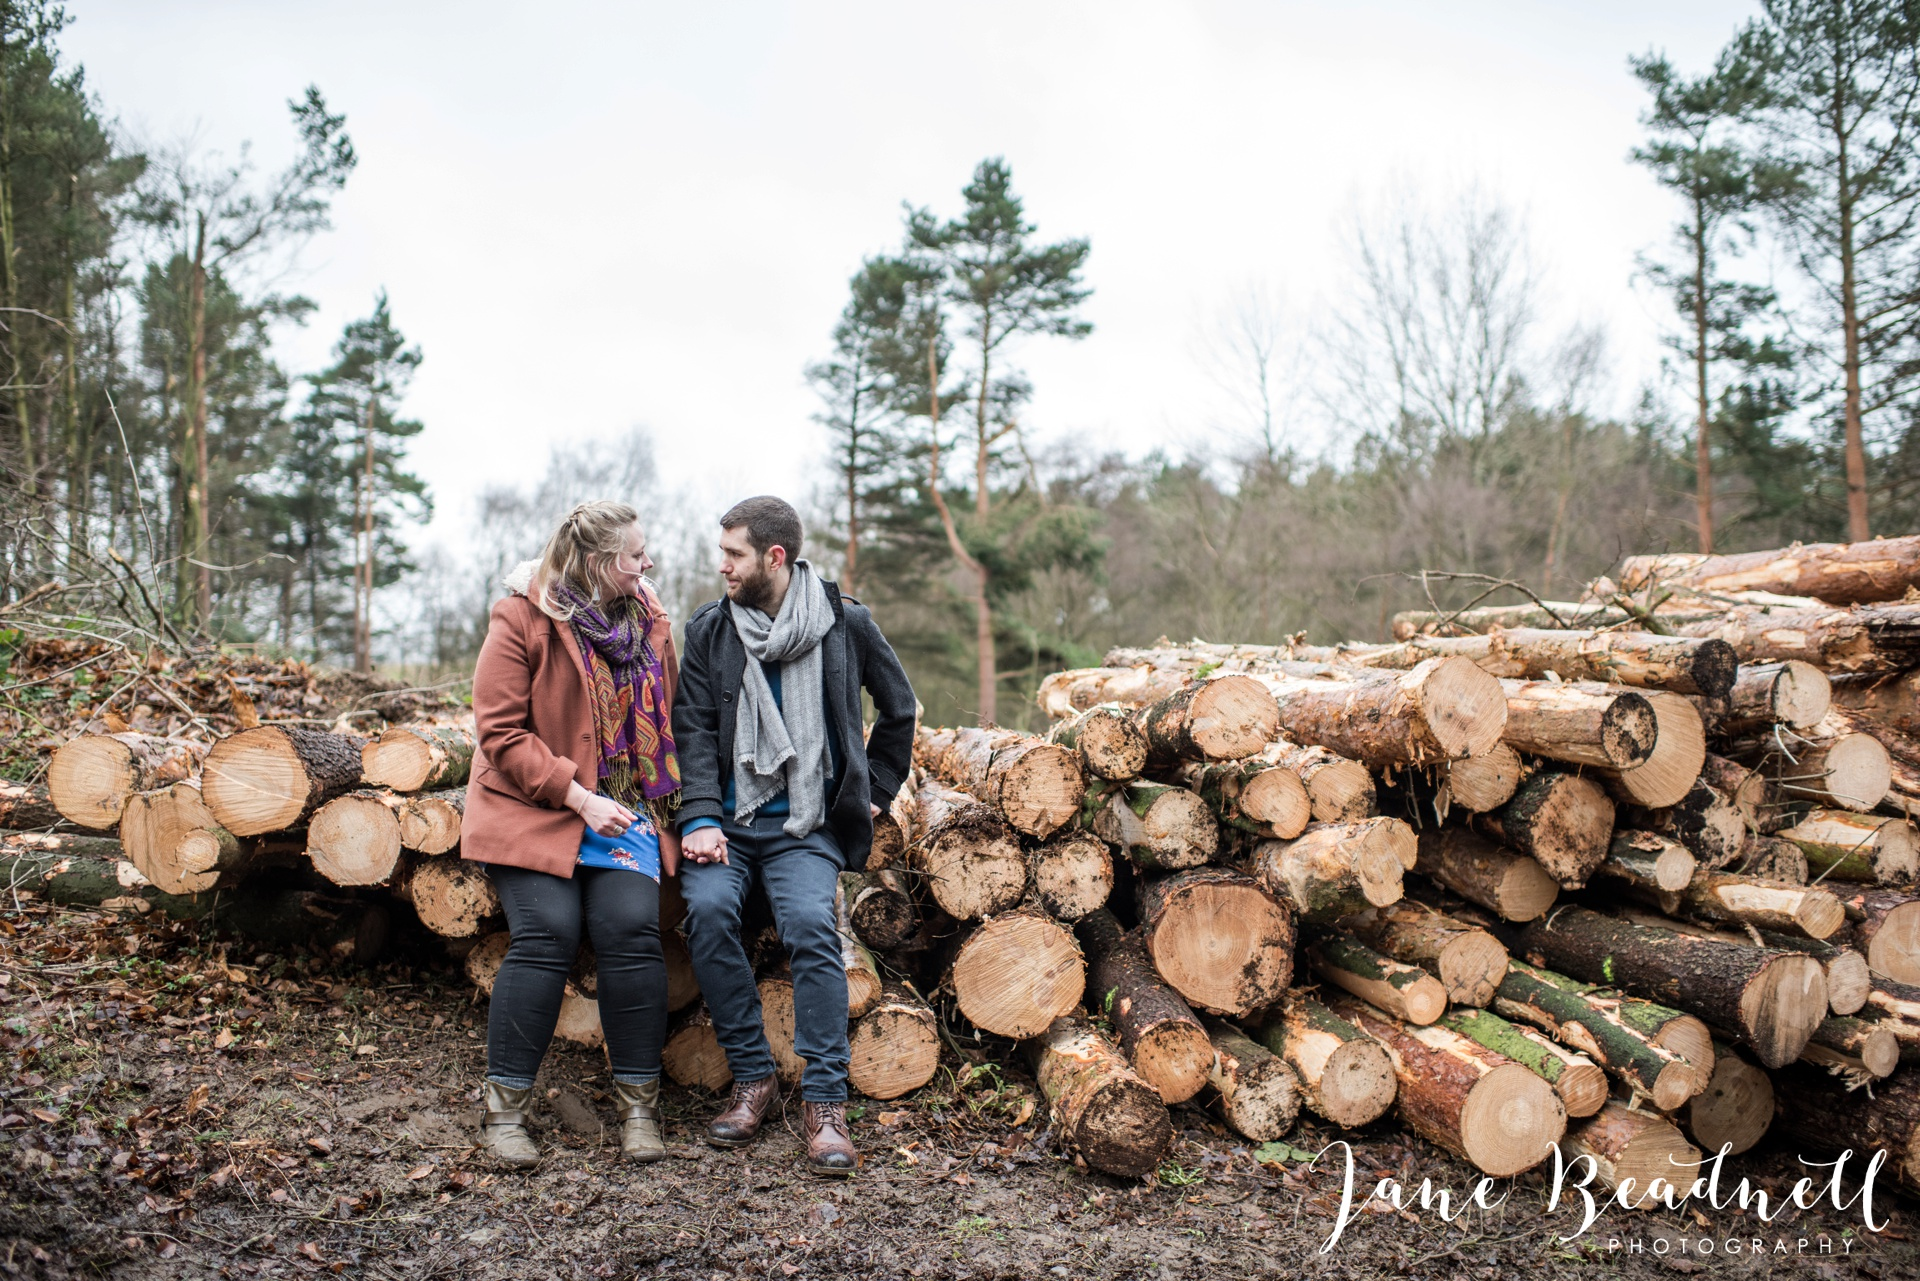 engagement photography Chevin jane beadnell wedding photographer Otley_0026